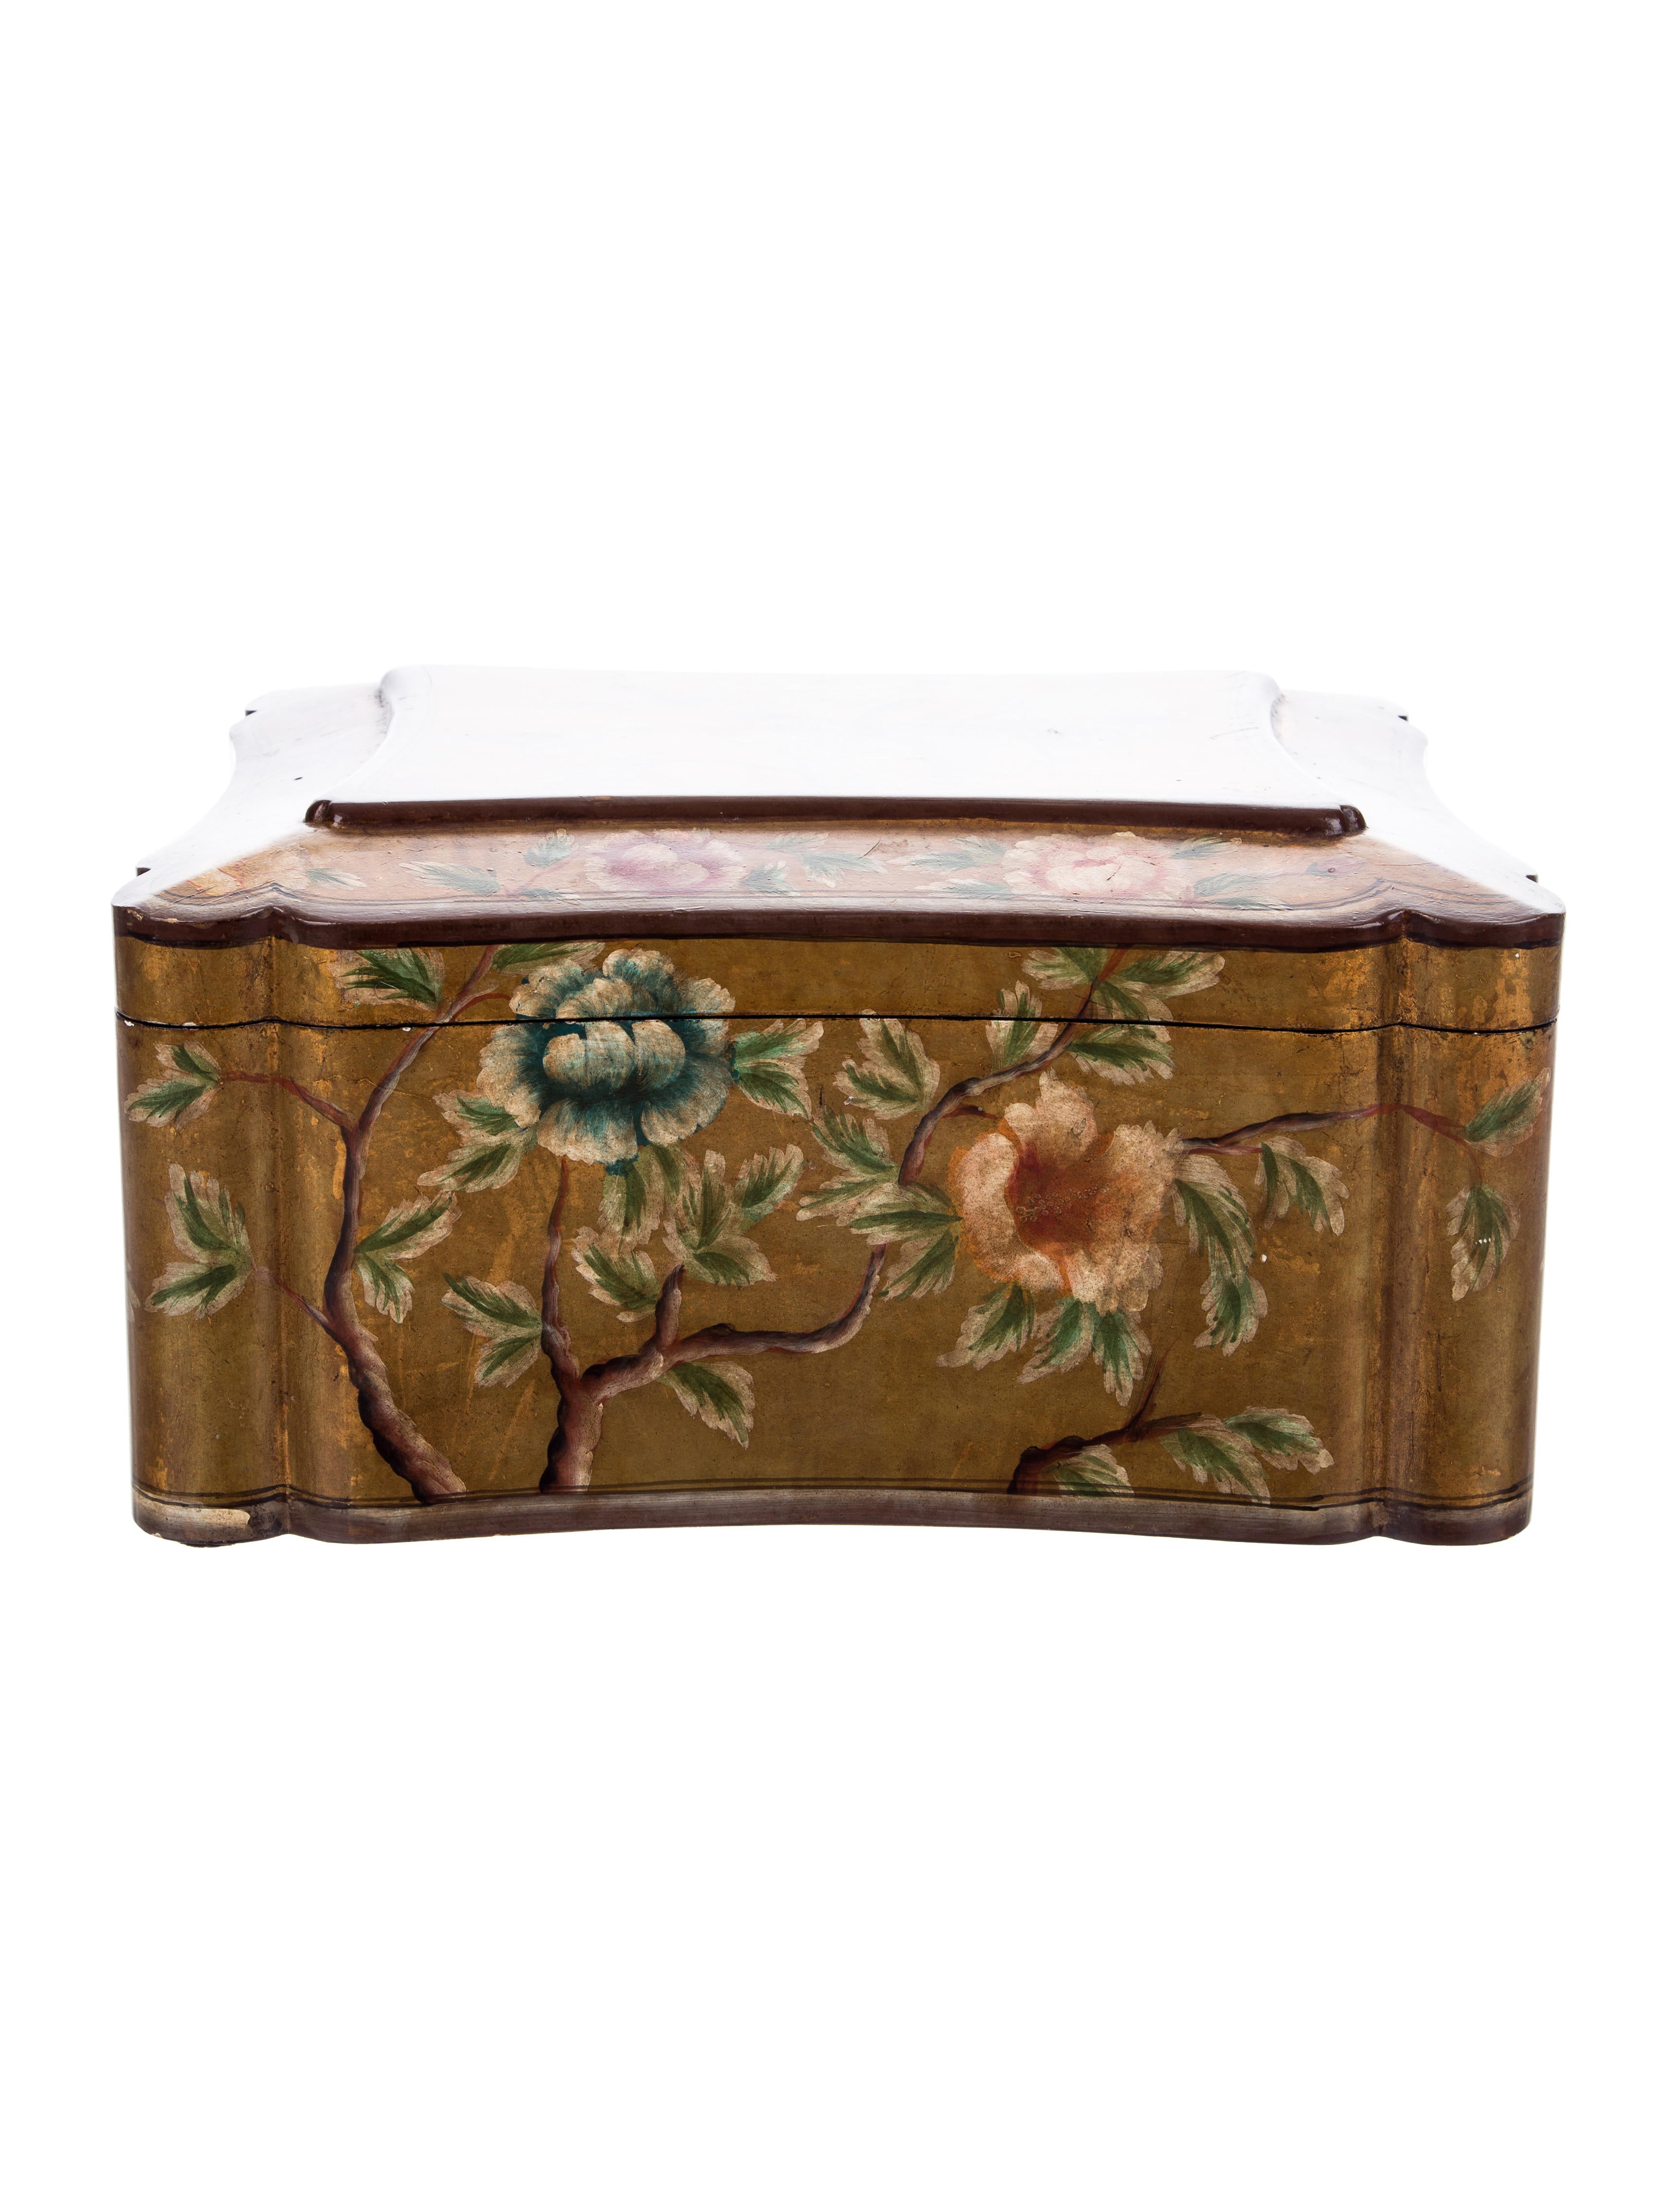 hand painted wooden chest decor and accessories